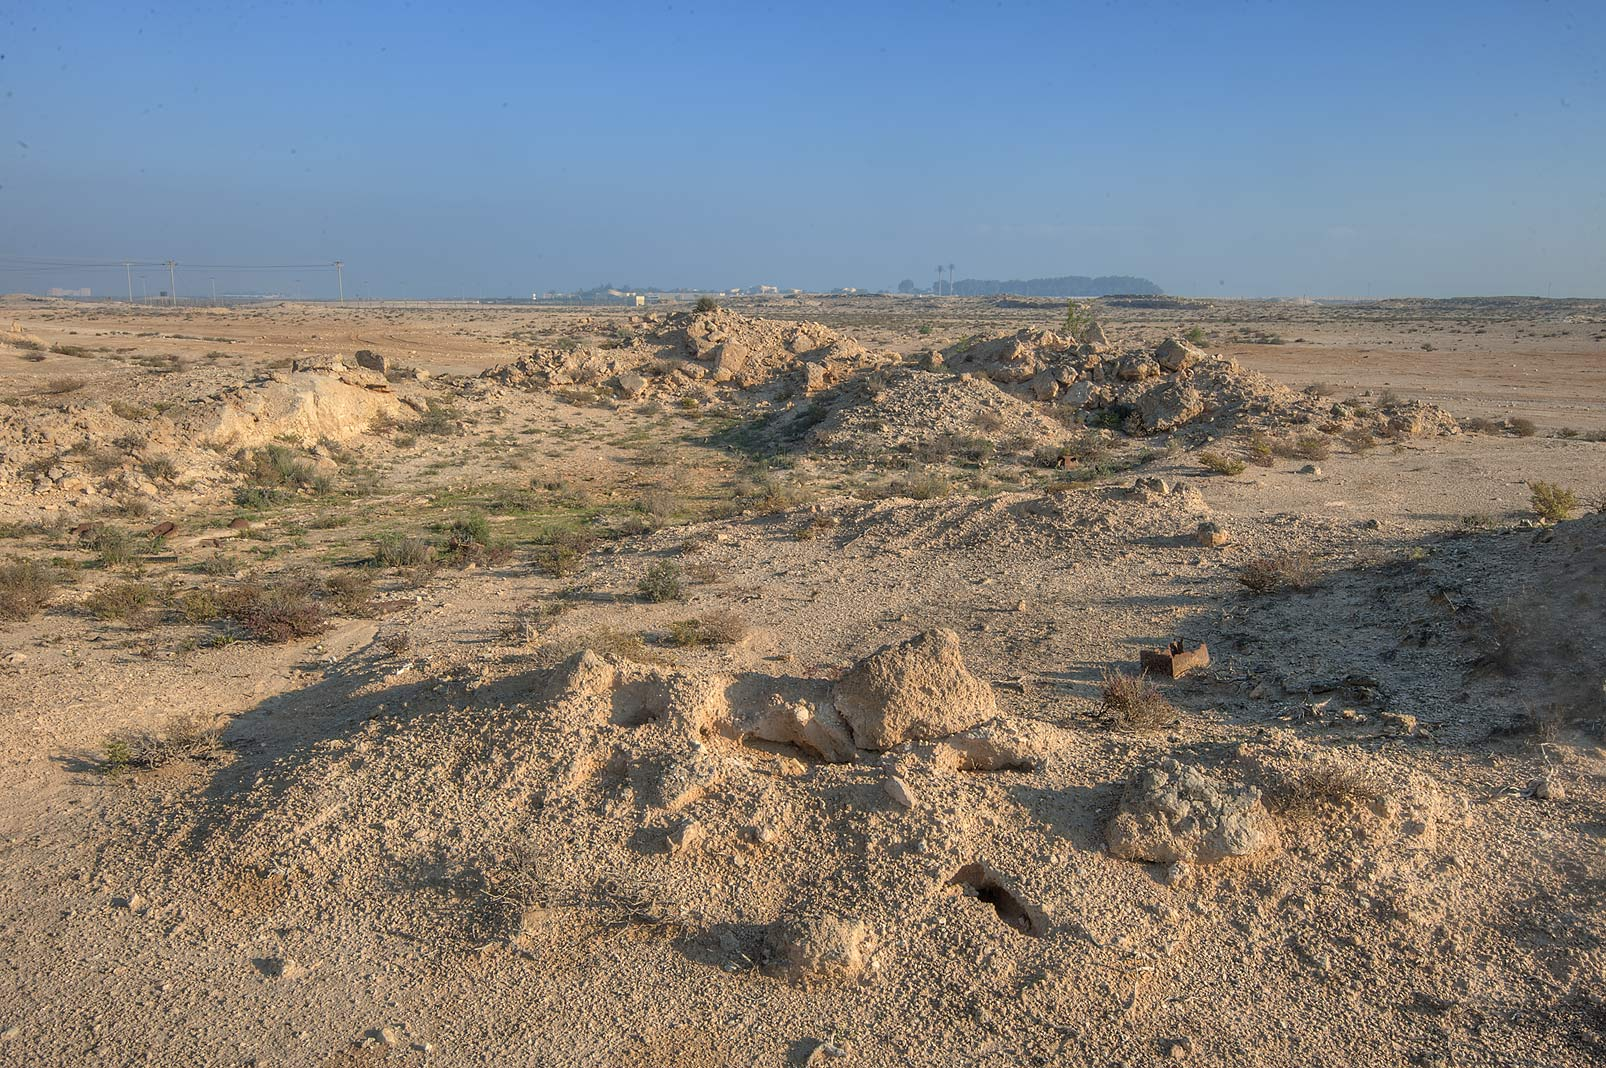 Ant mounds behind Jabal Al Jassasiya near Umm Al Gharaneej, on north-eastern coast. Qatar